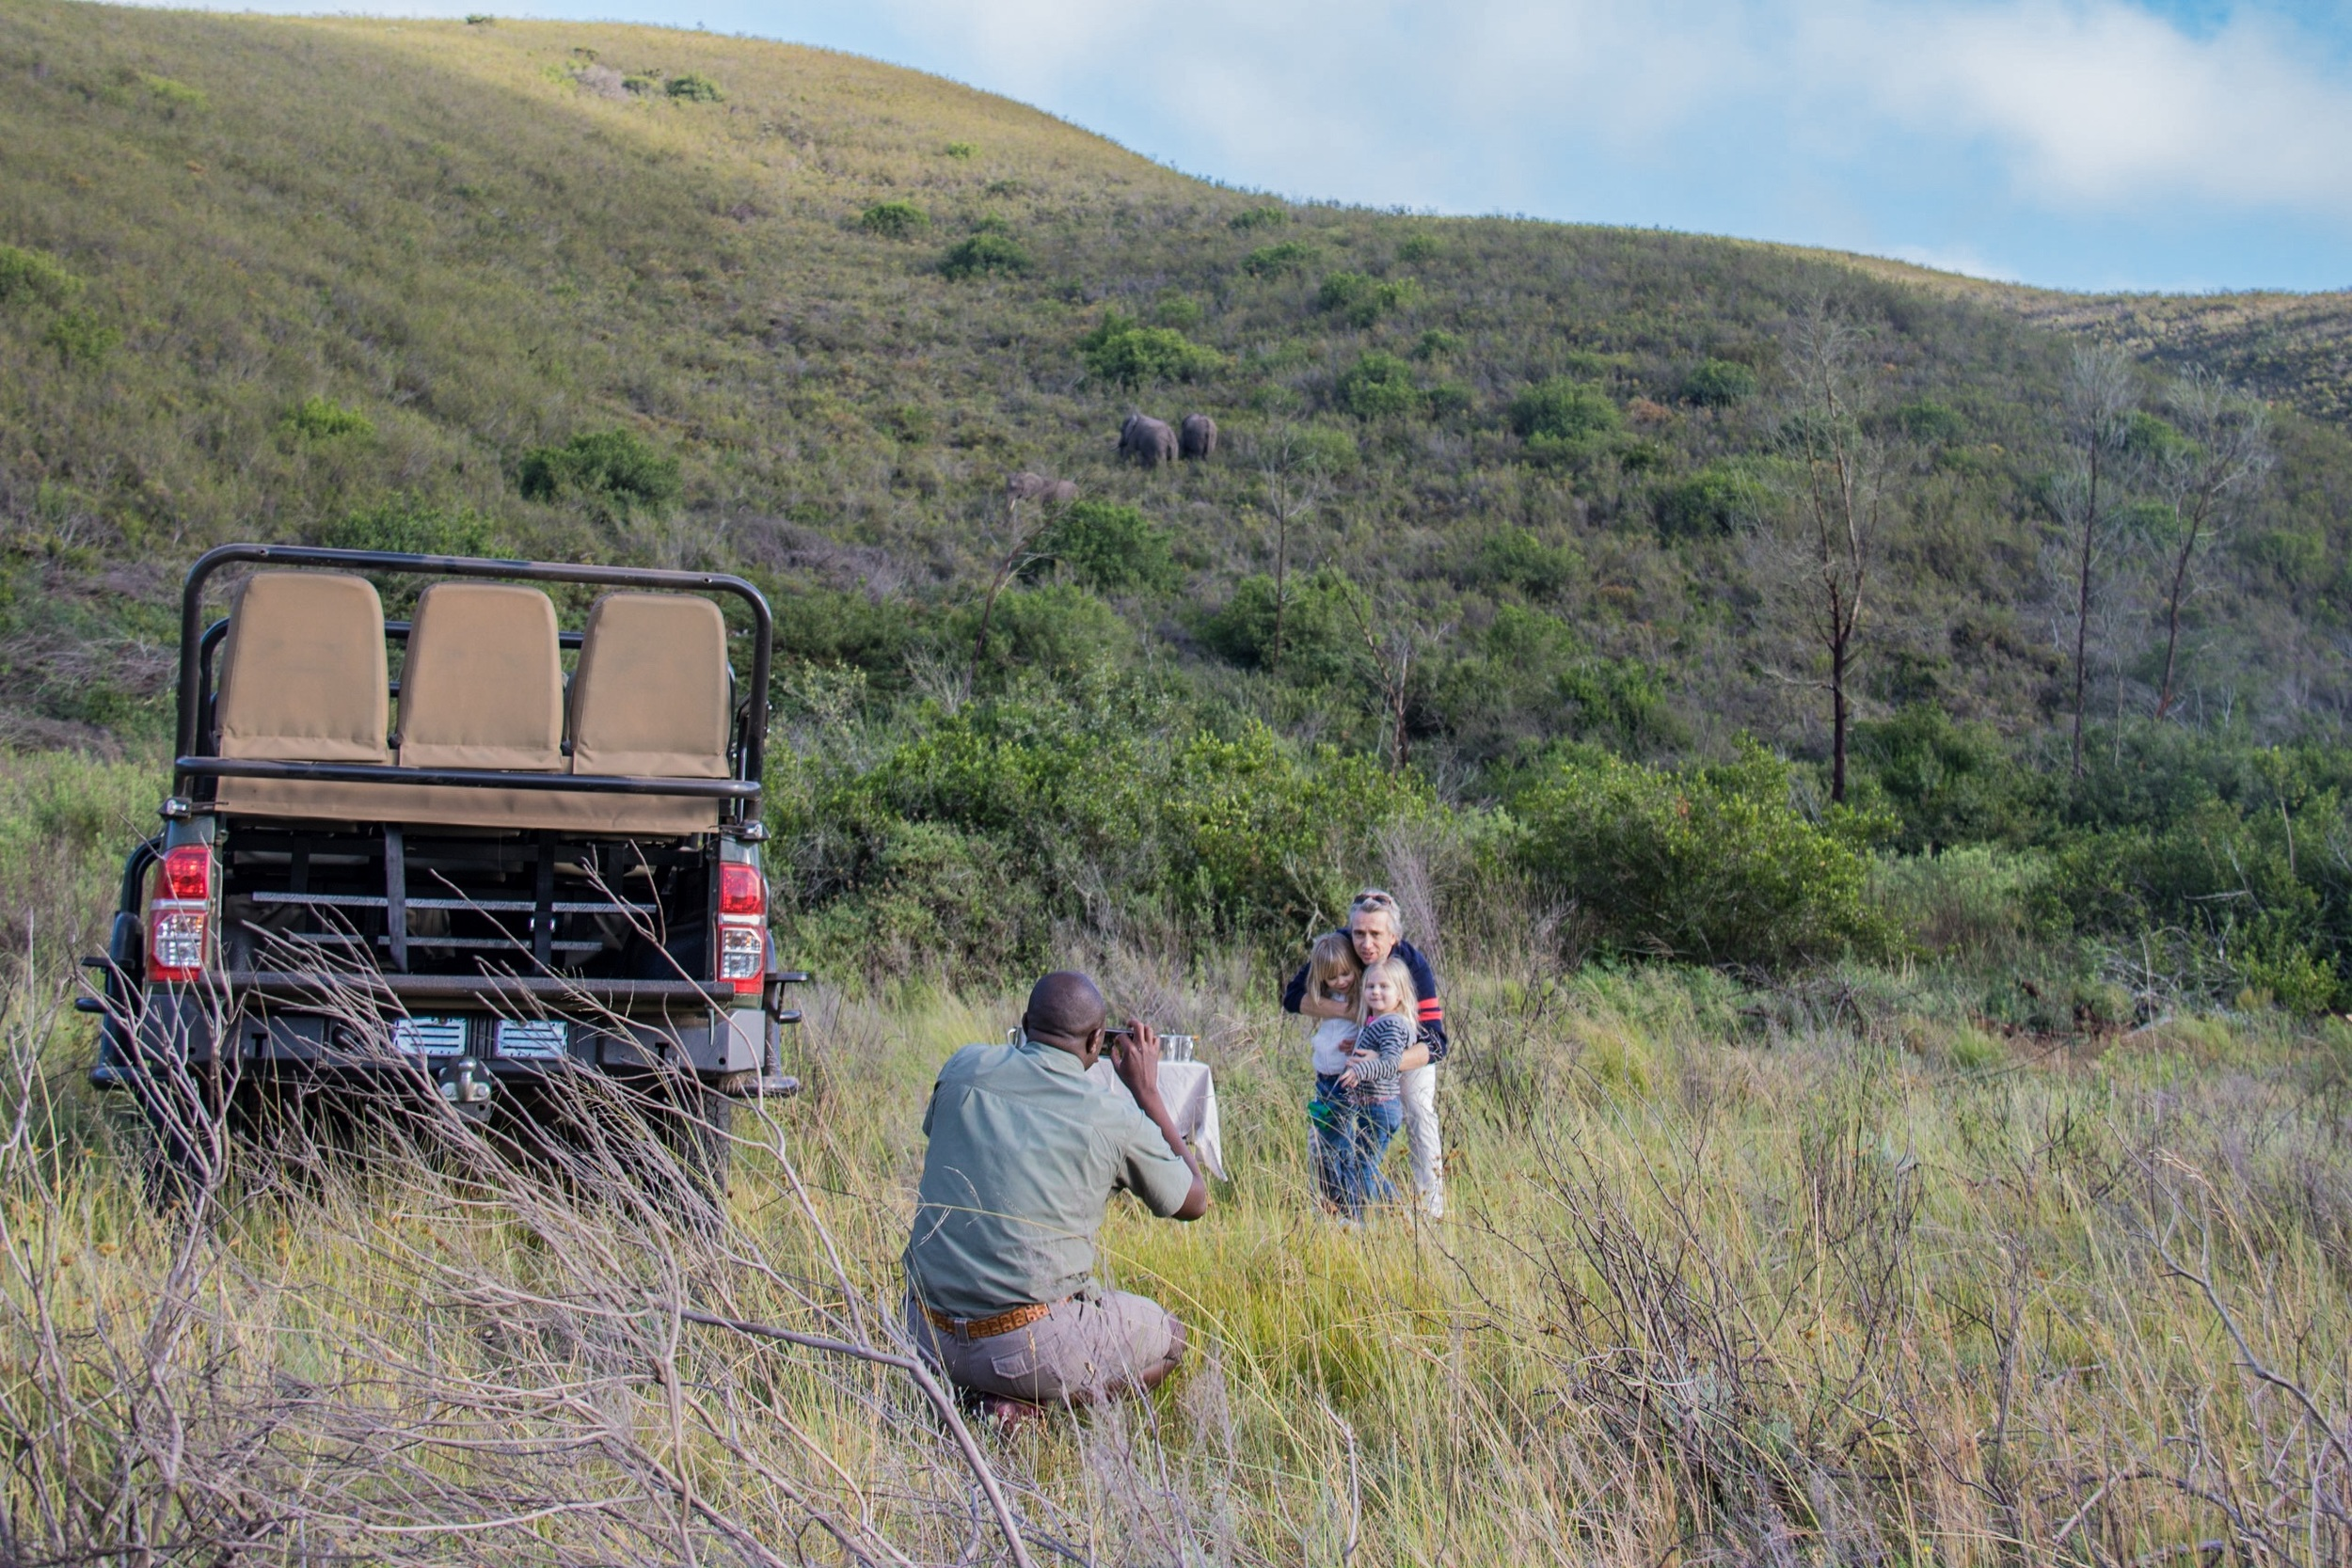 Morning game drive: breakfast with elephants